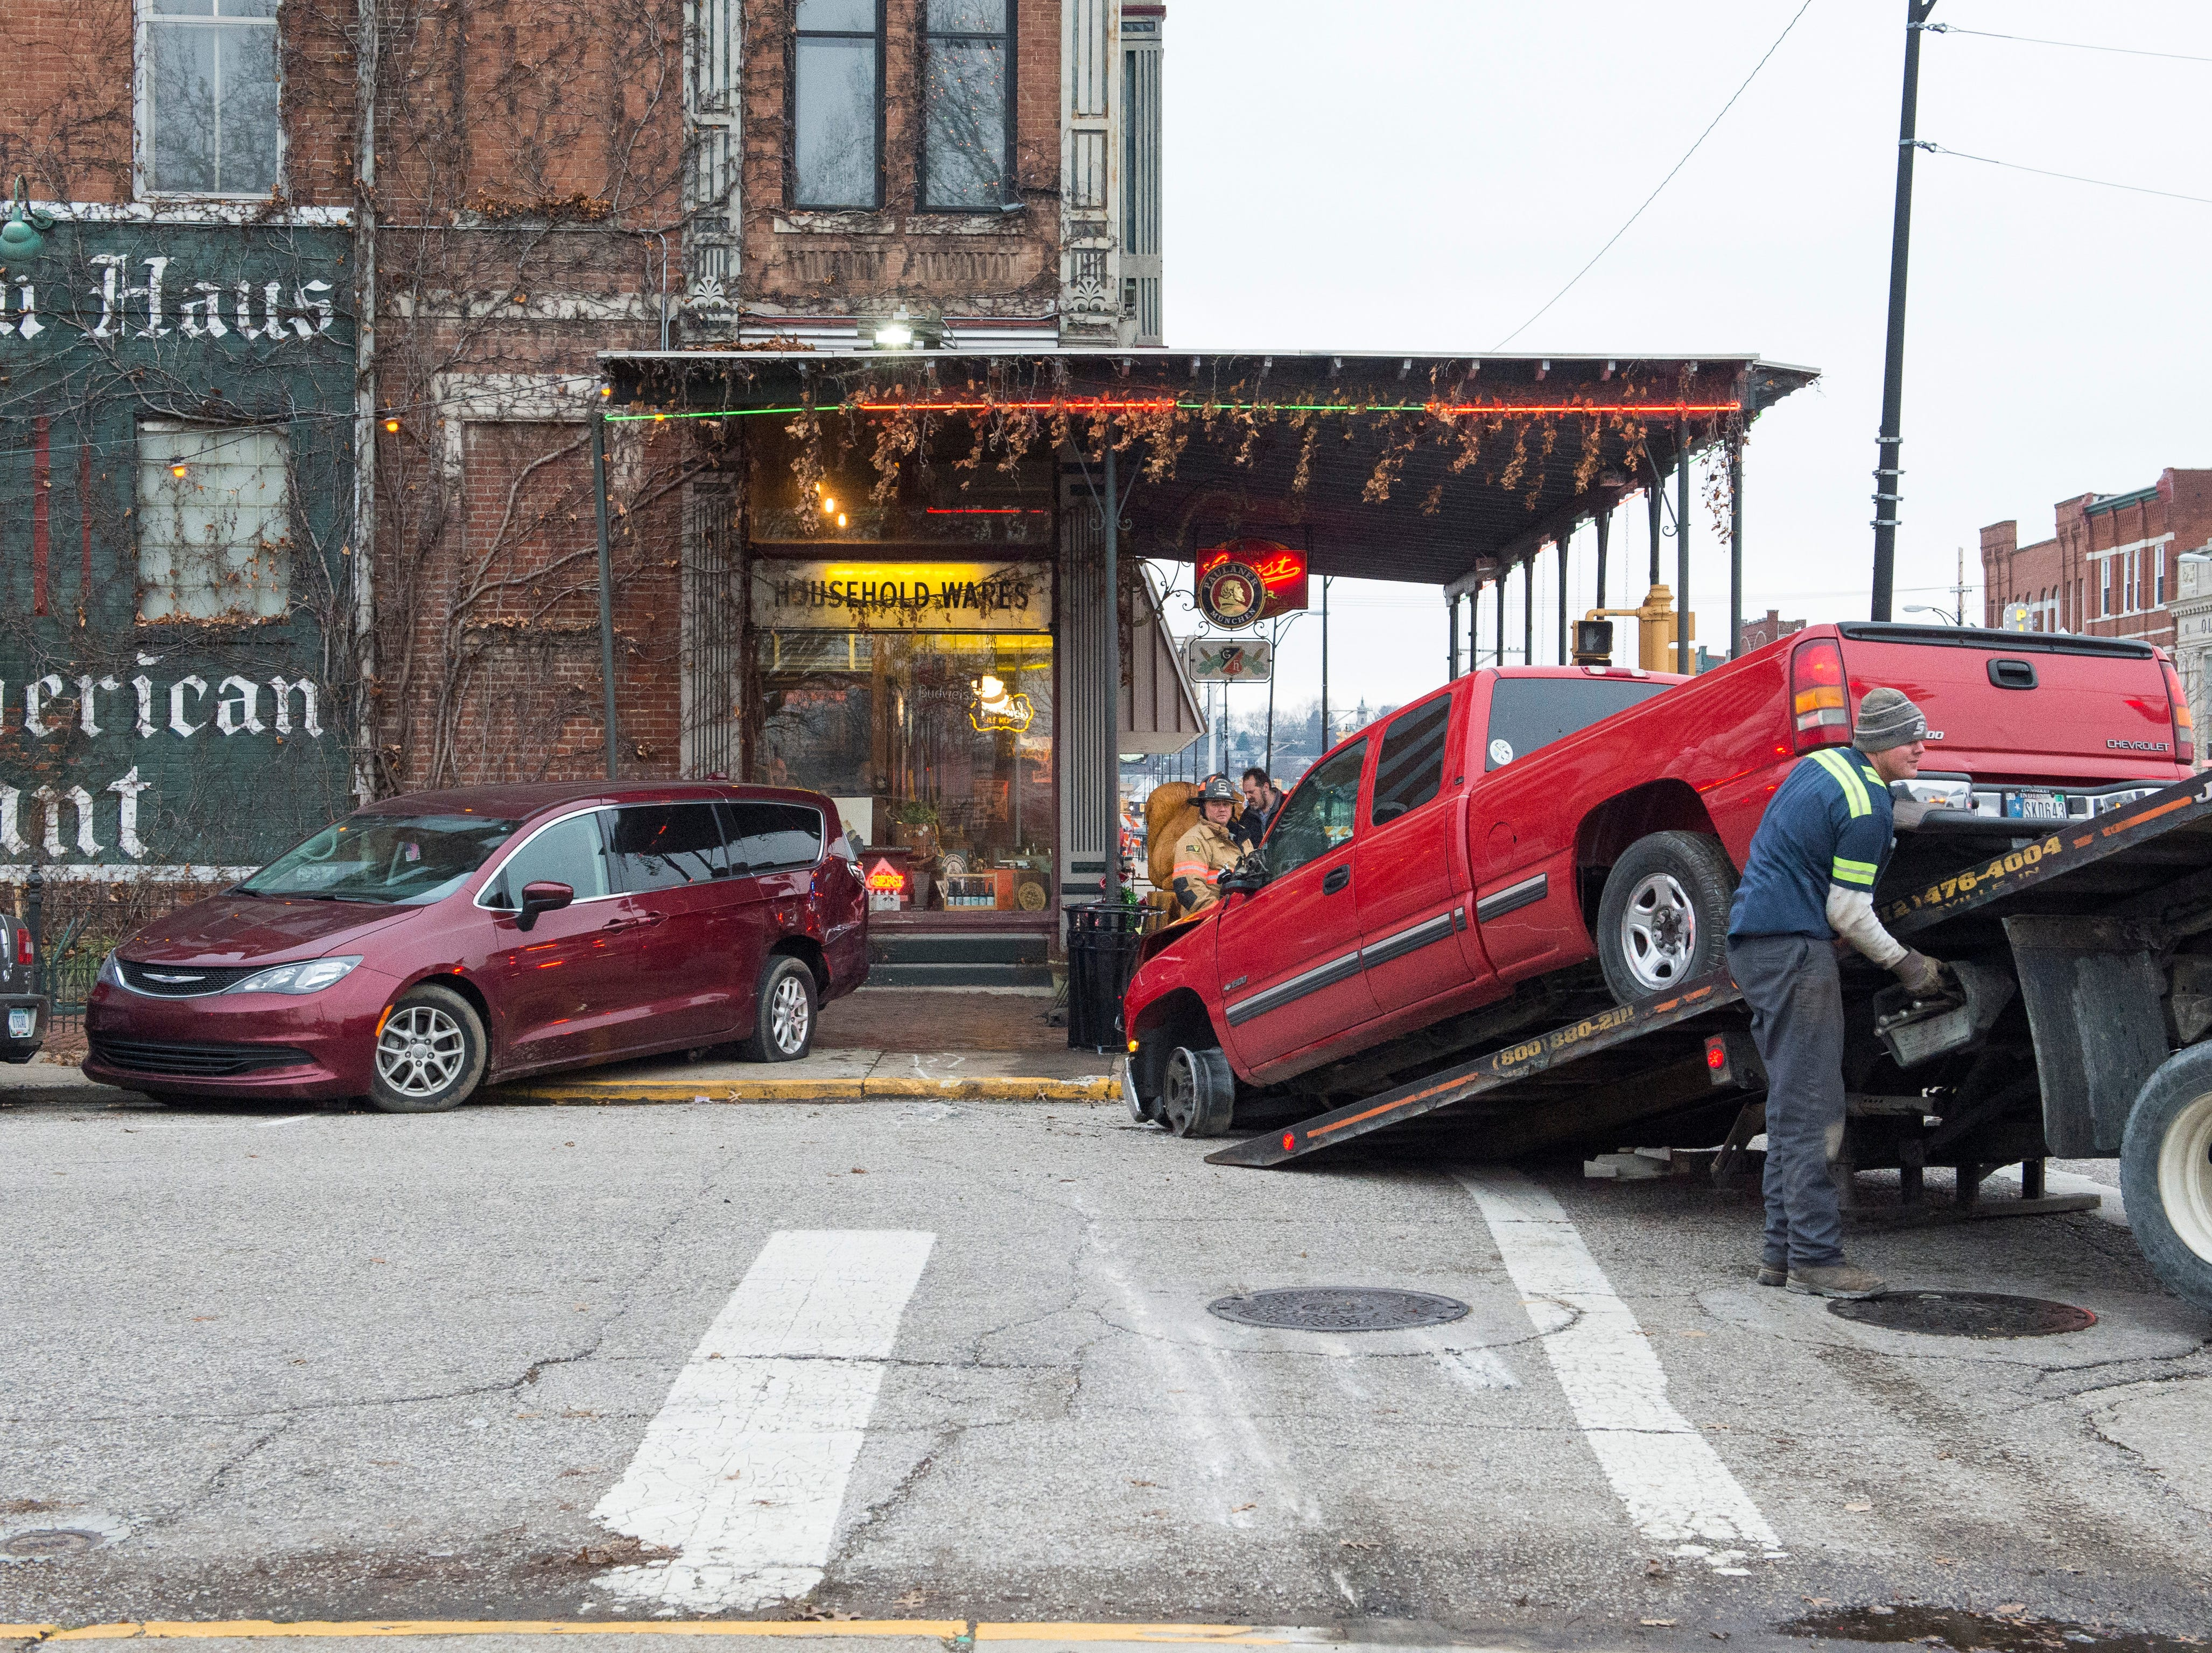 Evansville Police say a truck traveling west on Franklin Street lost a tire and veered onto the sidewalk in front of the library, colliding with an SUV trying to turn south on 10th Avenue. The SUV hit a parked minivan causing all three vehicles to hit the fence and awning of the Gerst Haus.